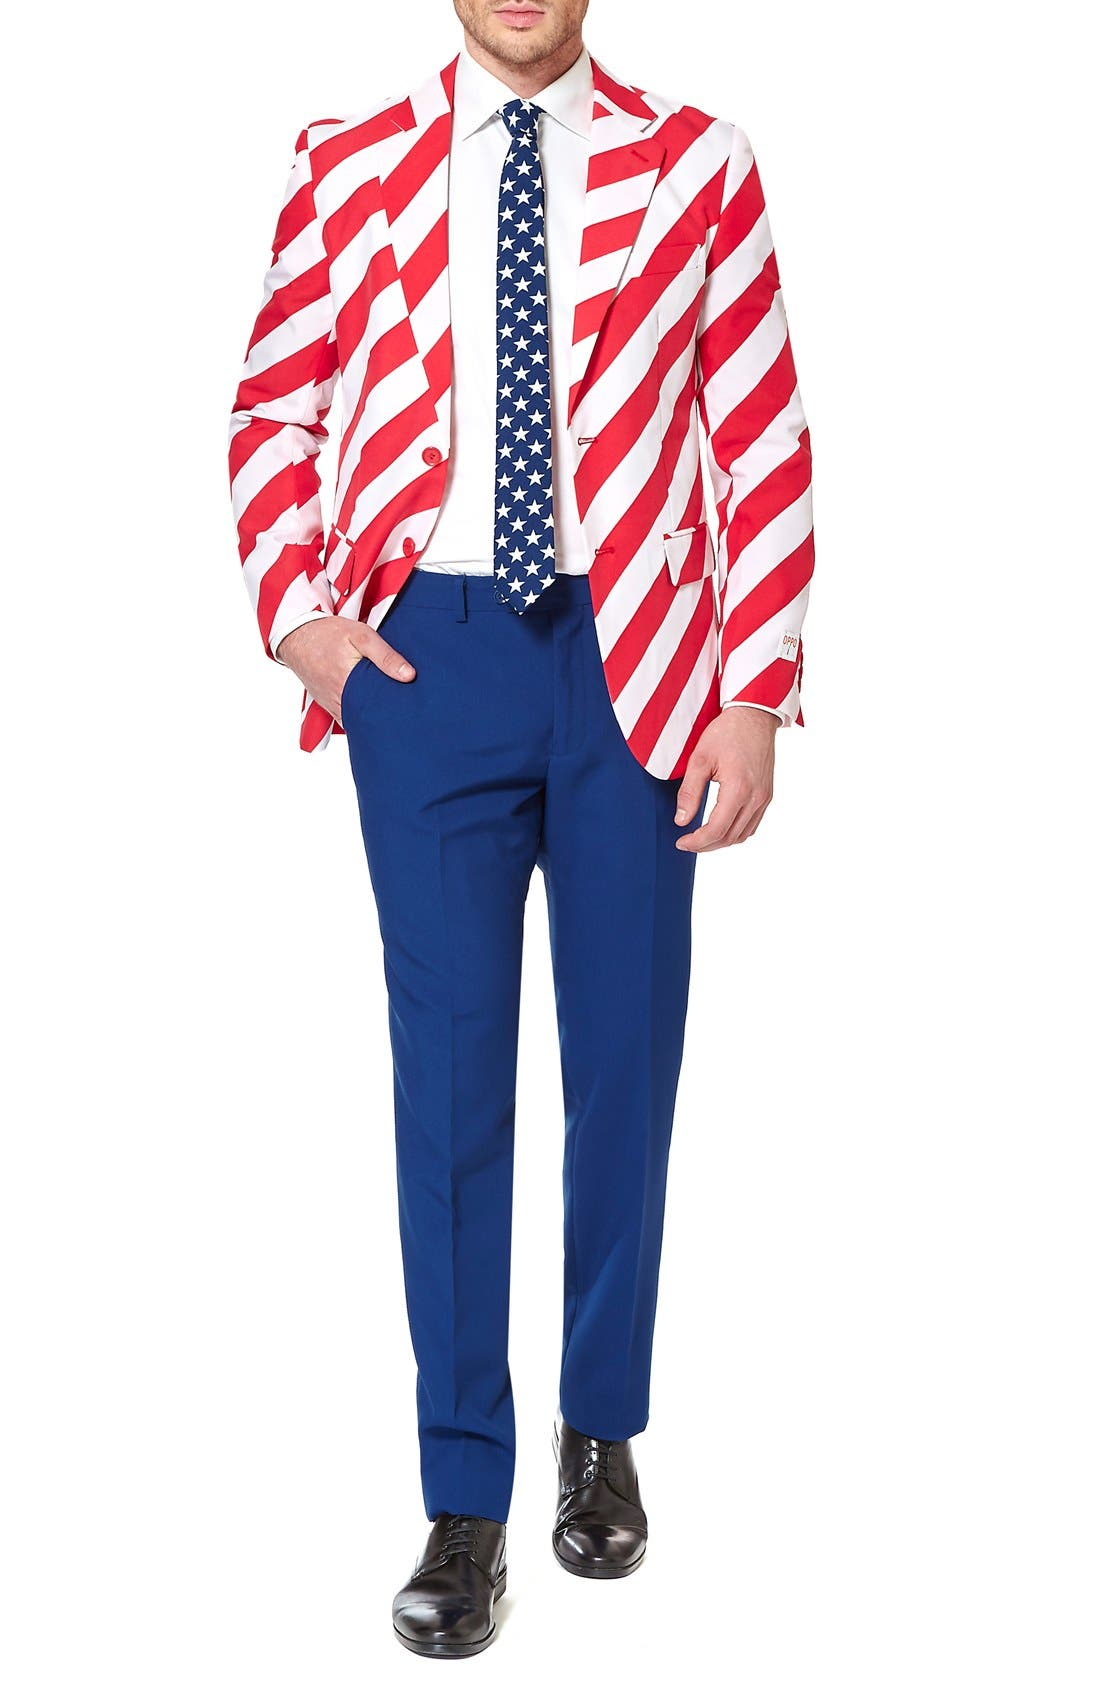 'United Stripes' Trim Fit Suit with Tie,                         Main,                         color, Red/ Blue/ White